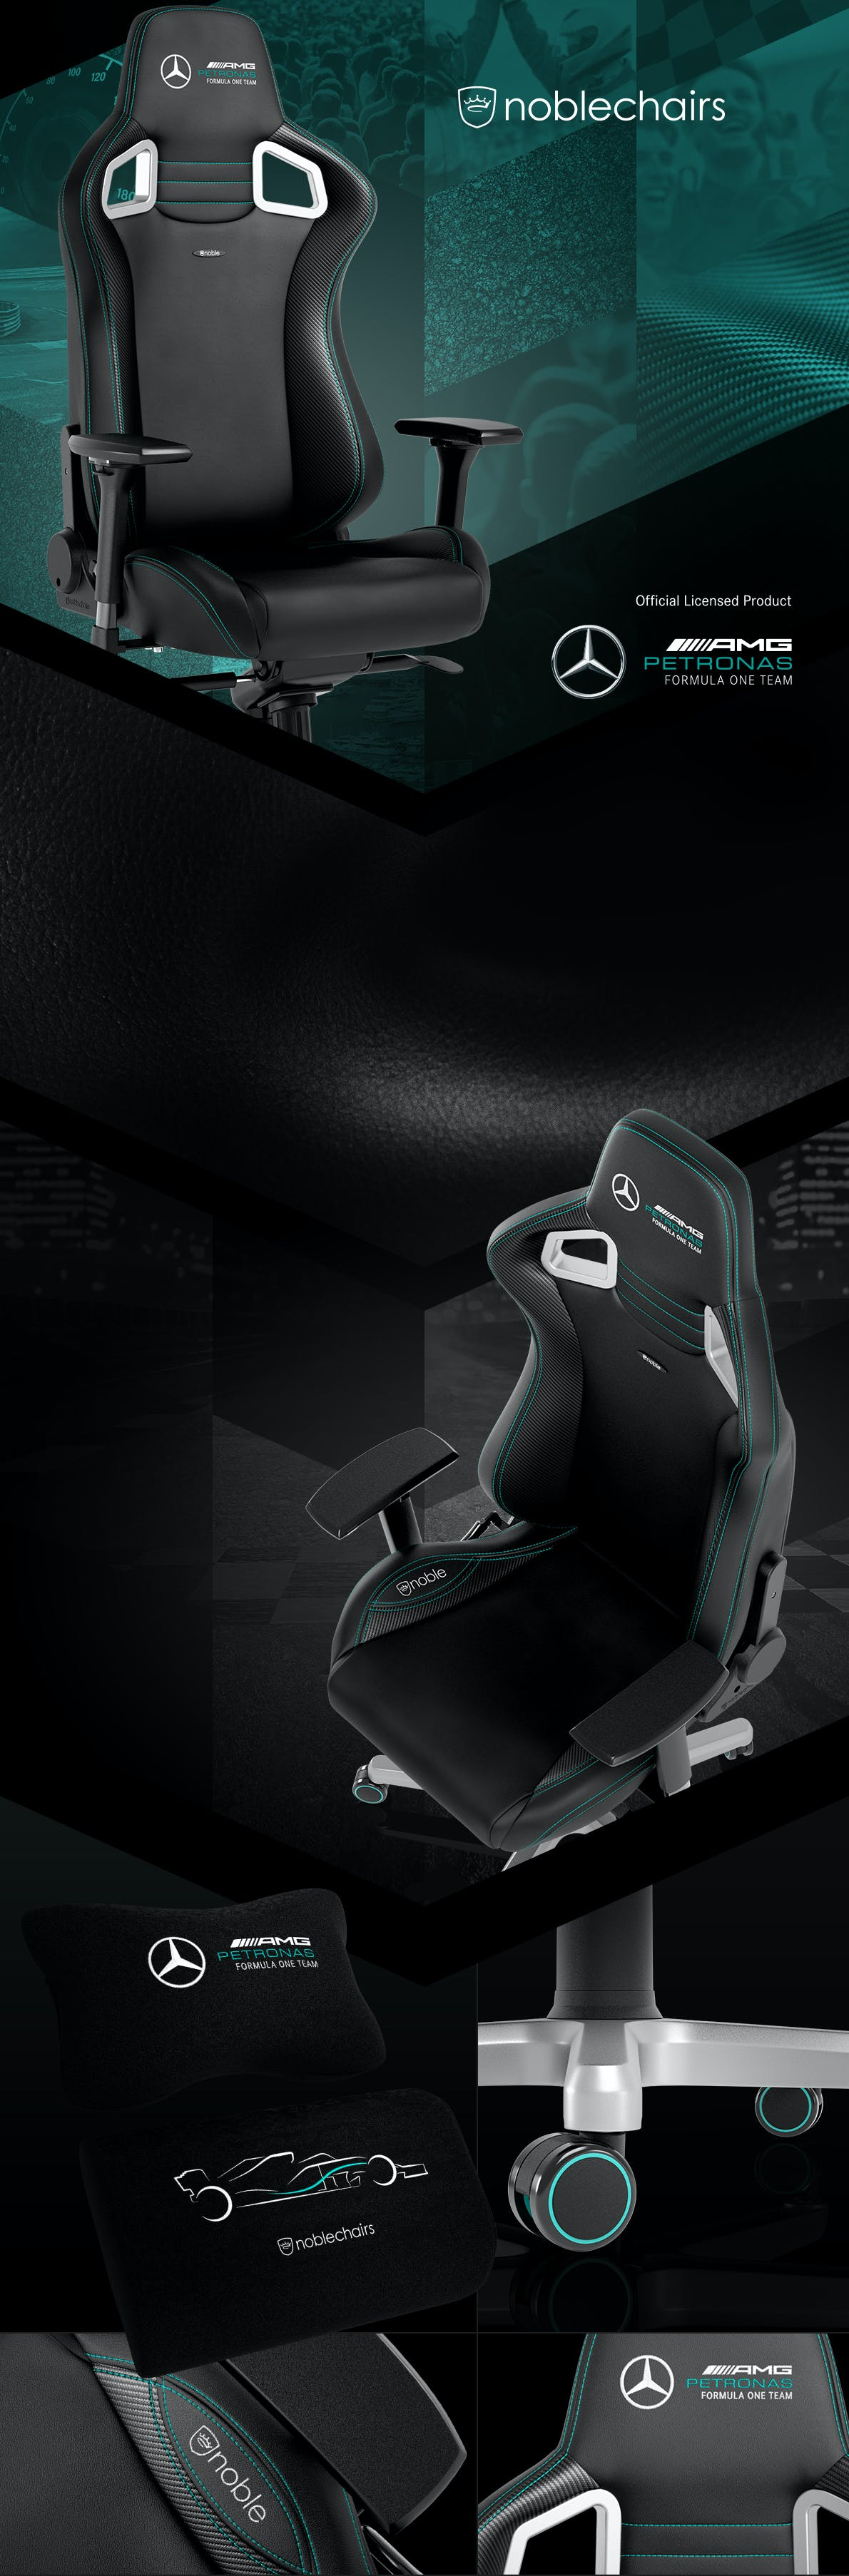 Mercedes Amg Petronas F1 Team 2021 Edition Noblechairs Premium Gaming Chairs